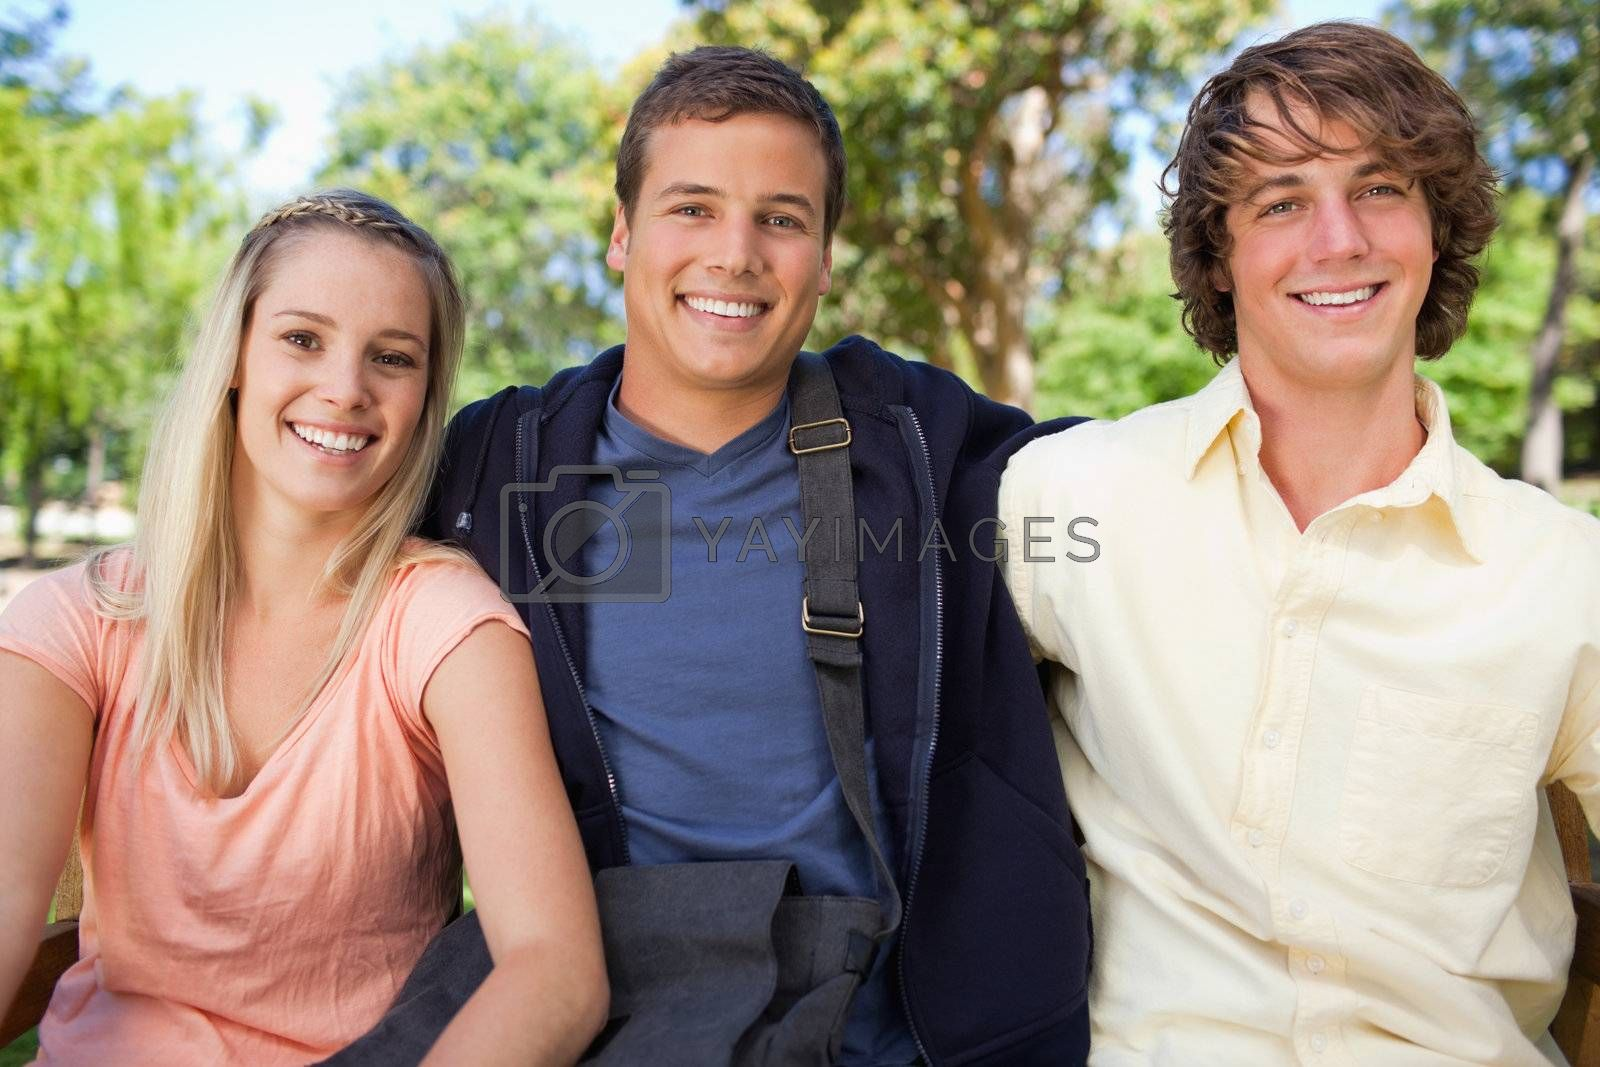 Portrait of three smiling students in a park together